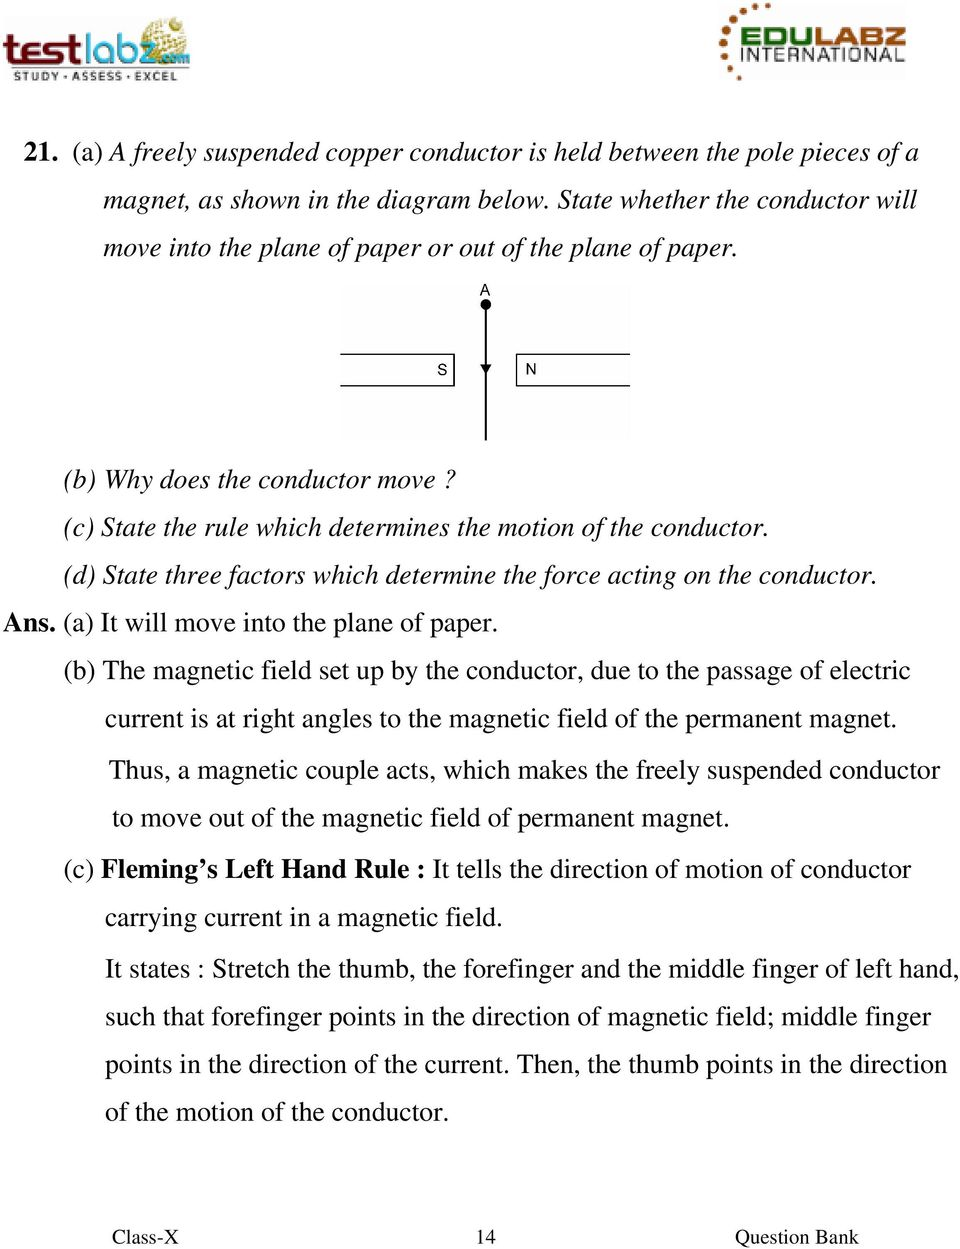 (d) State three factors which determine the force acting on the conductor. Ans. (a) It will move into the plane of paper.